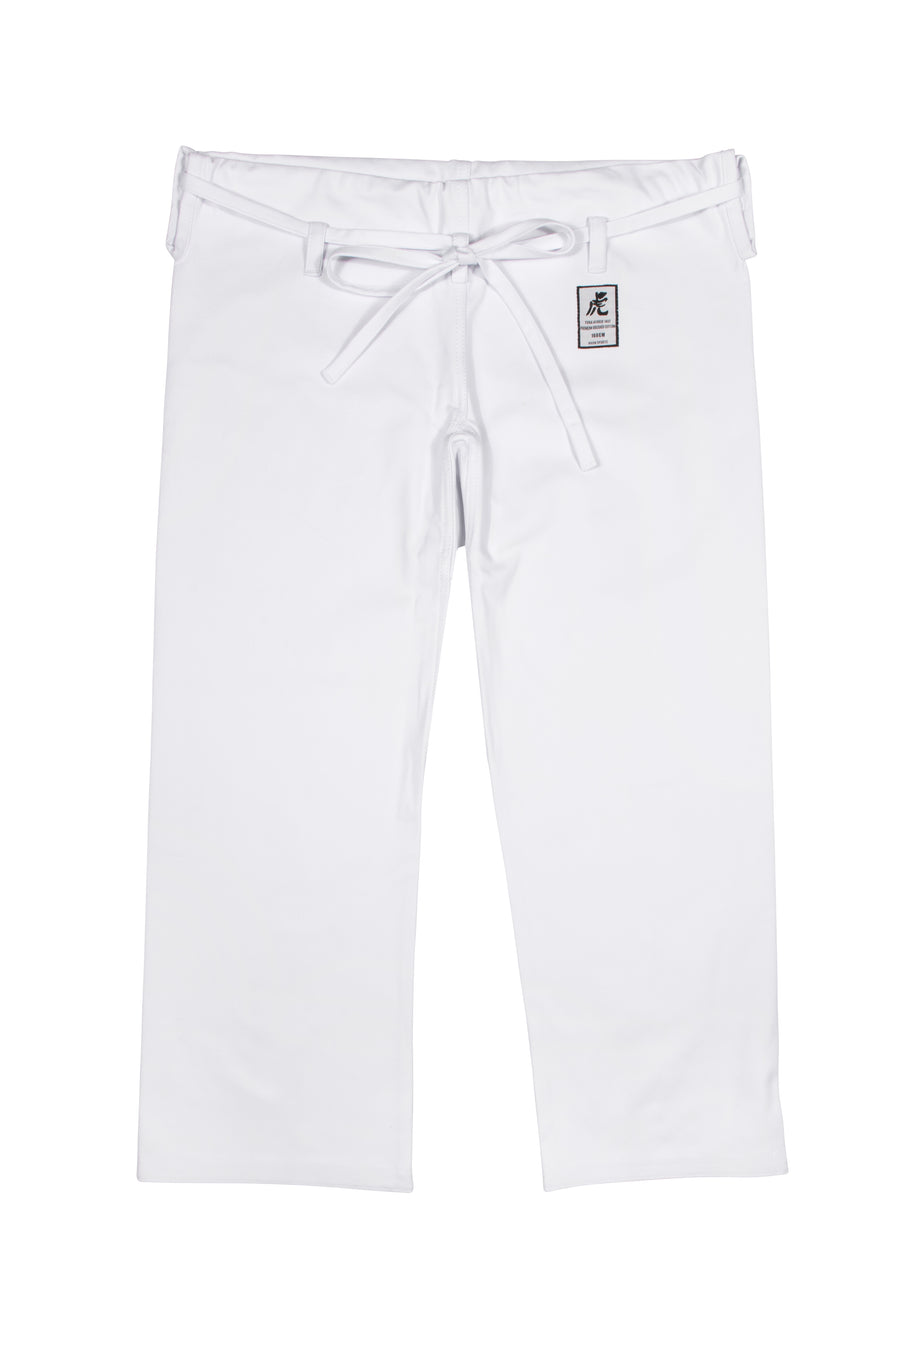 IKKEN Tora Karate Gi Trouser Pants | 14oz Cotton | Japanese Cut | Made To Order